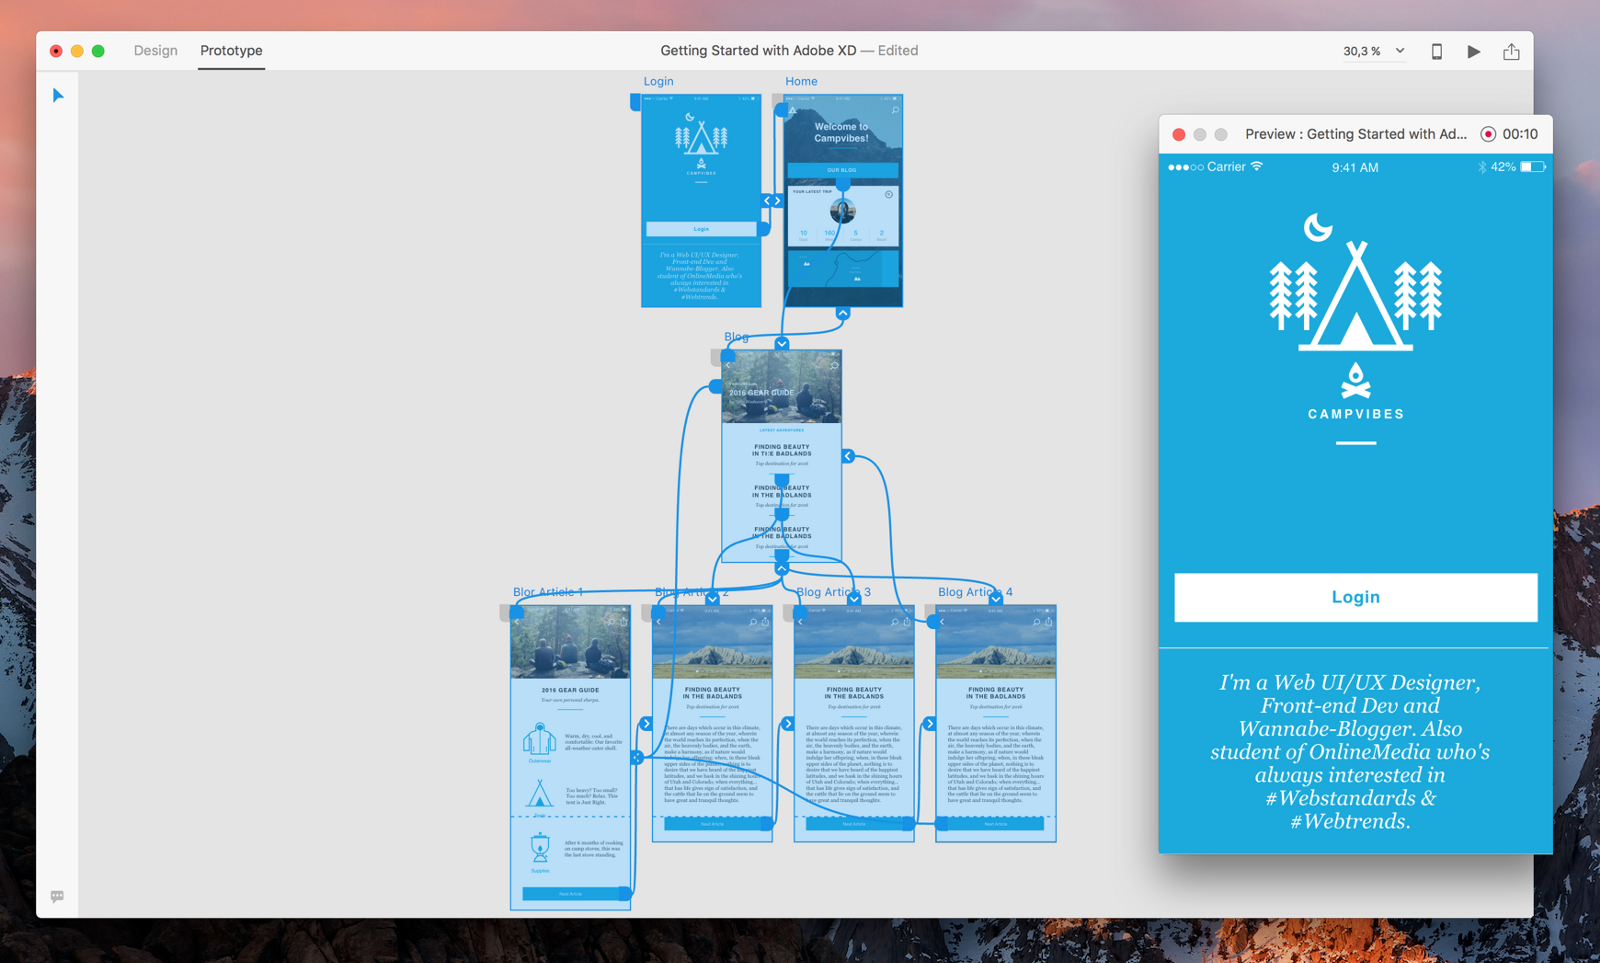 Preview your prototype on your Mac - Adobe XD